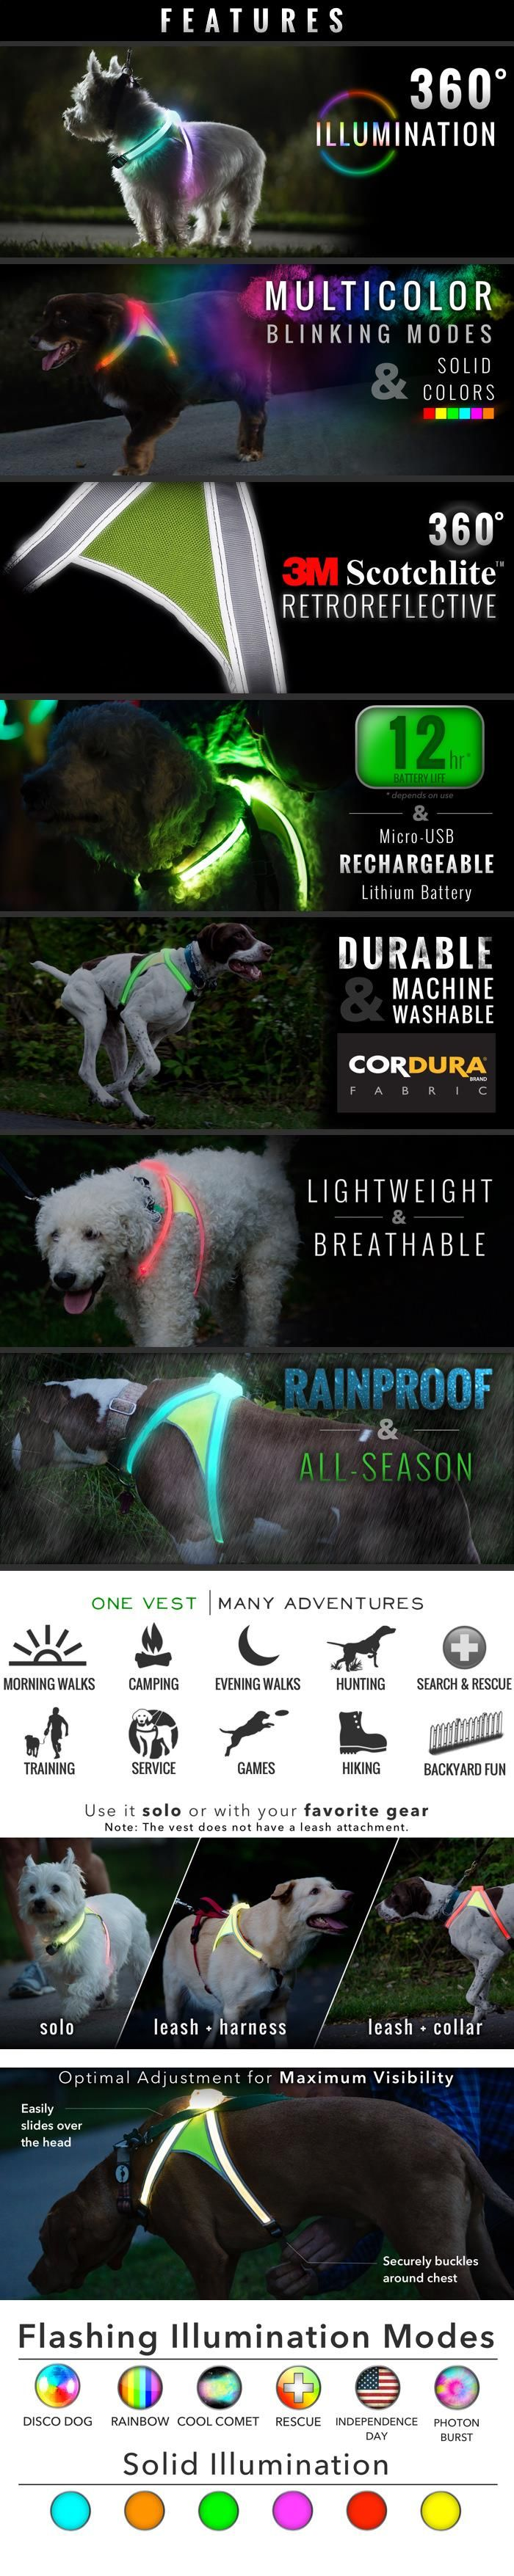 LightHound! Would love to put this on our dog while camping so we can find him when he wanders off. Would also be great for night hikes!